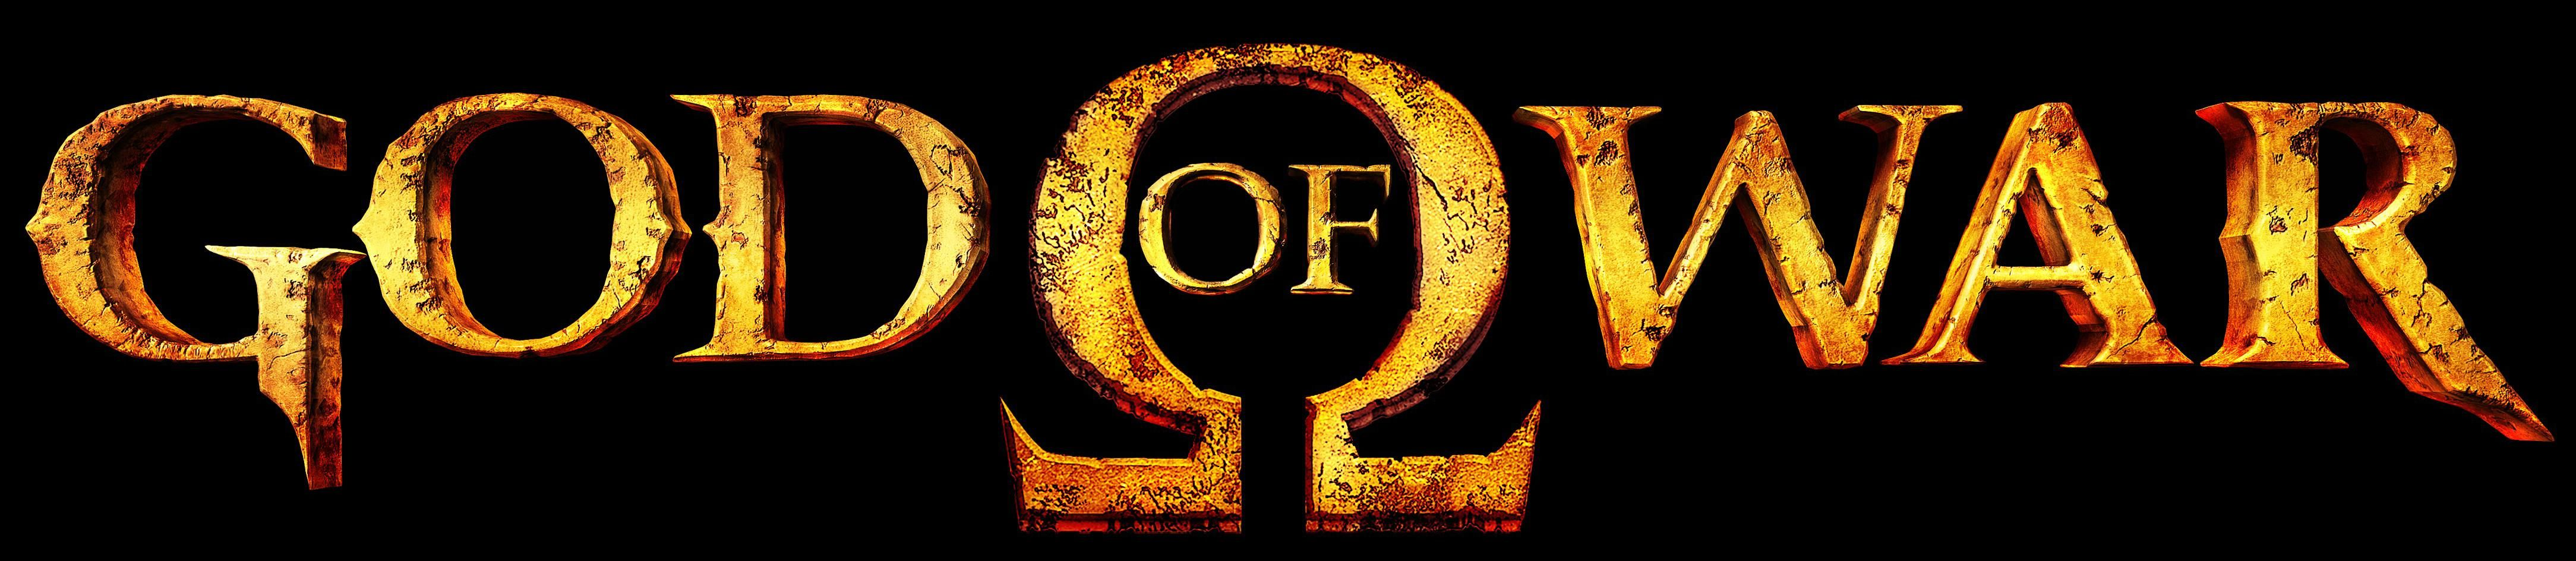 God Of War 1 PC Game Highly Compressed In 195 MB, Download